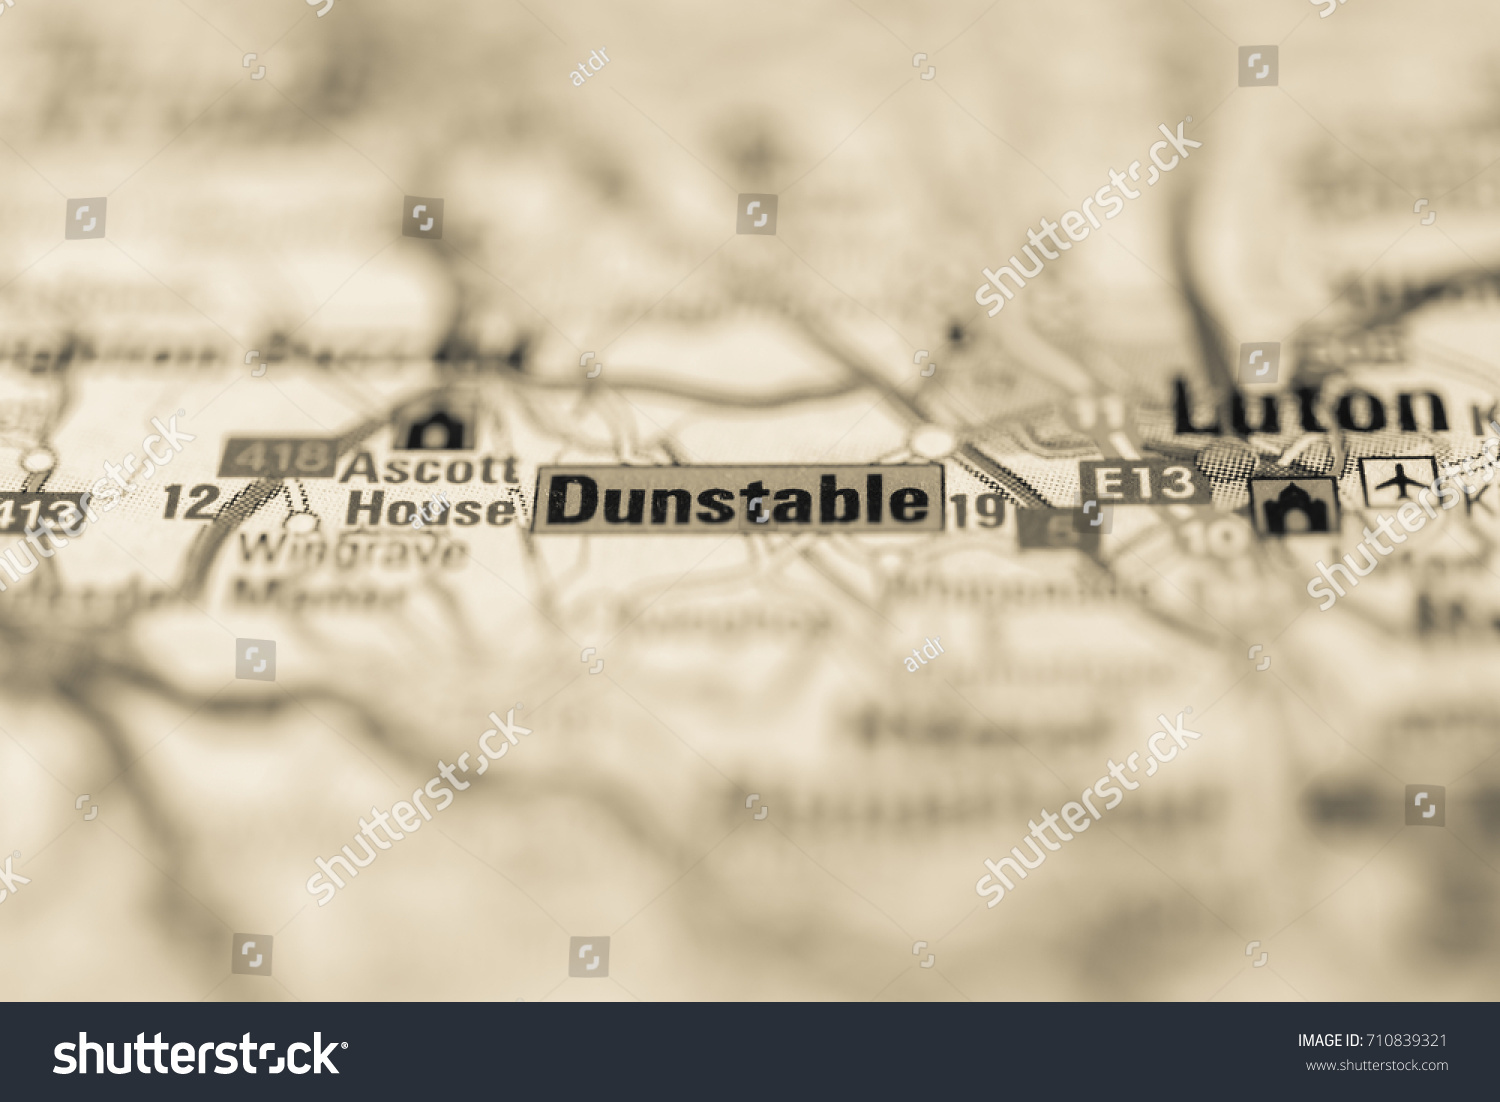 Dunstable On Map Stock Photo 710839321 Shutterstock